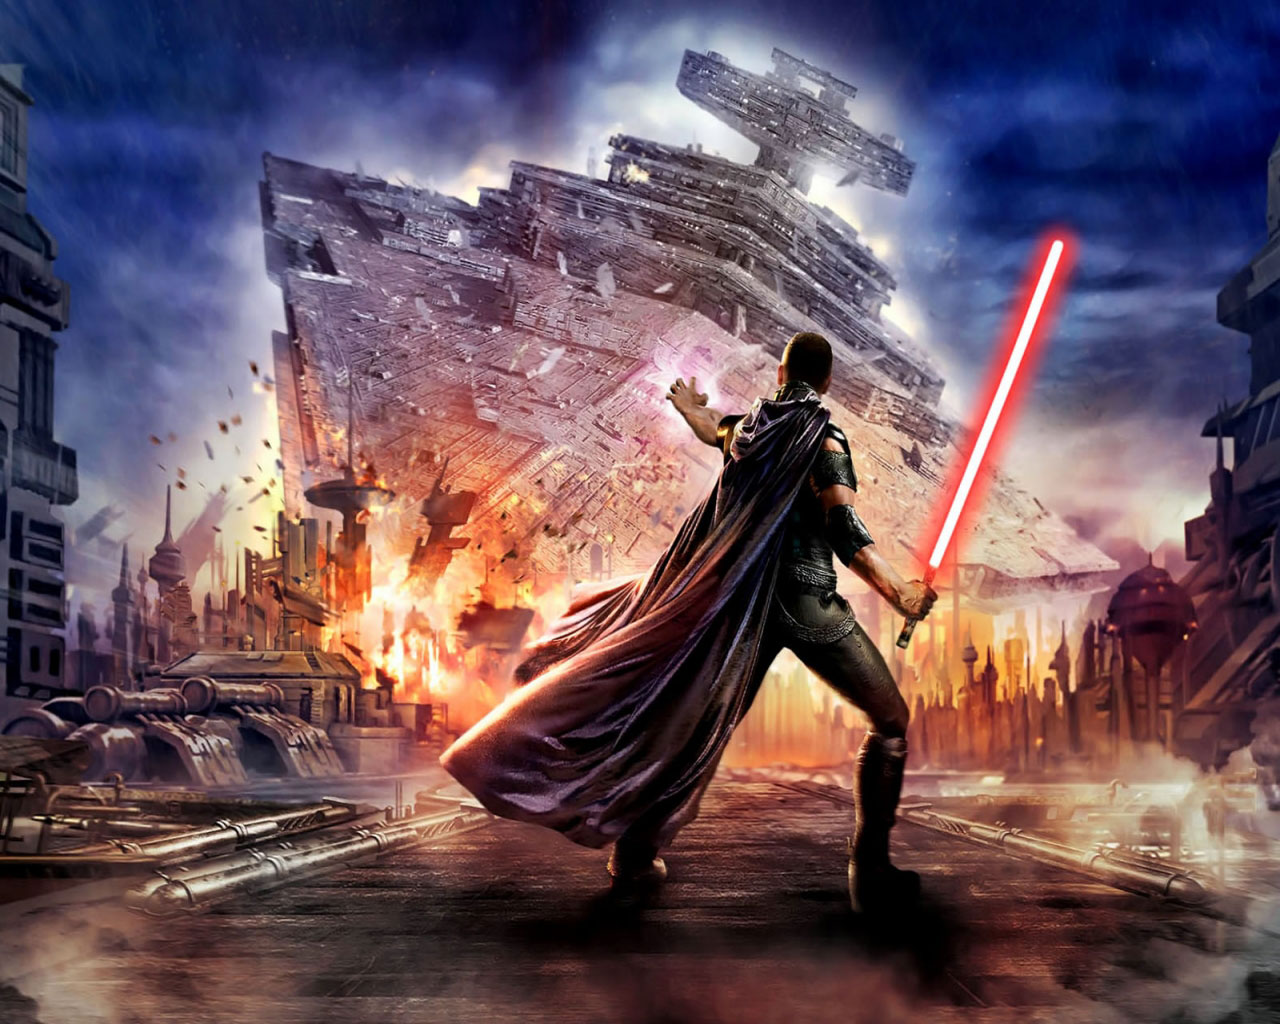 Star Wars The Force Unleashed 2 Wallpapers: RyansReviews: STAR WARS The Force Unleashed (PSP